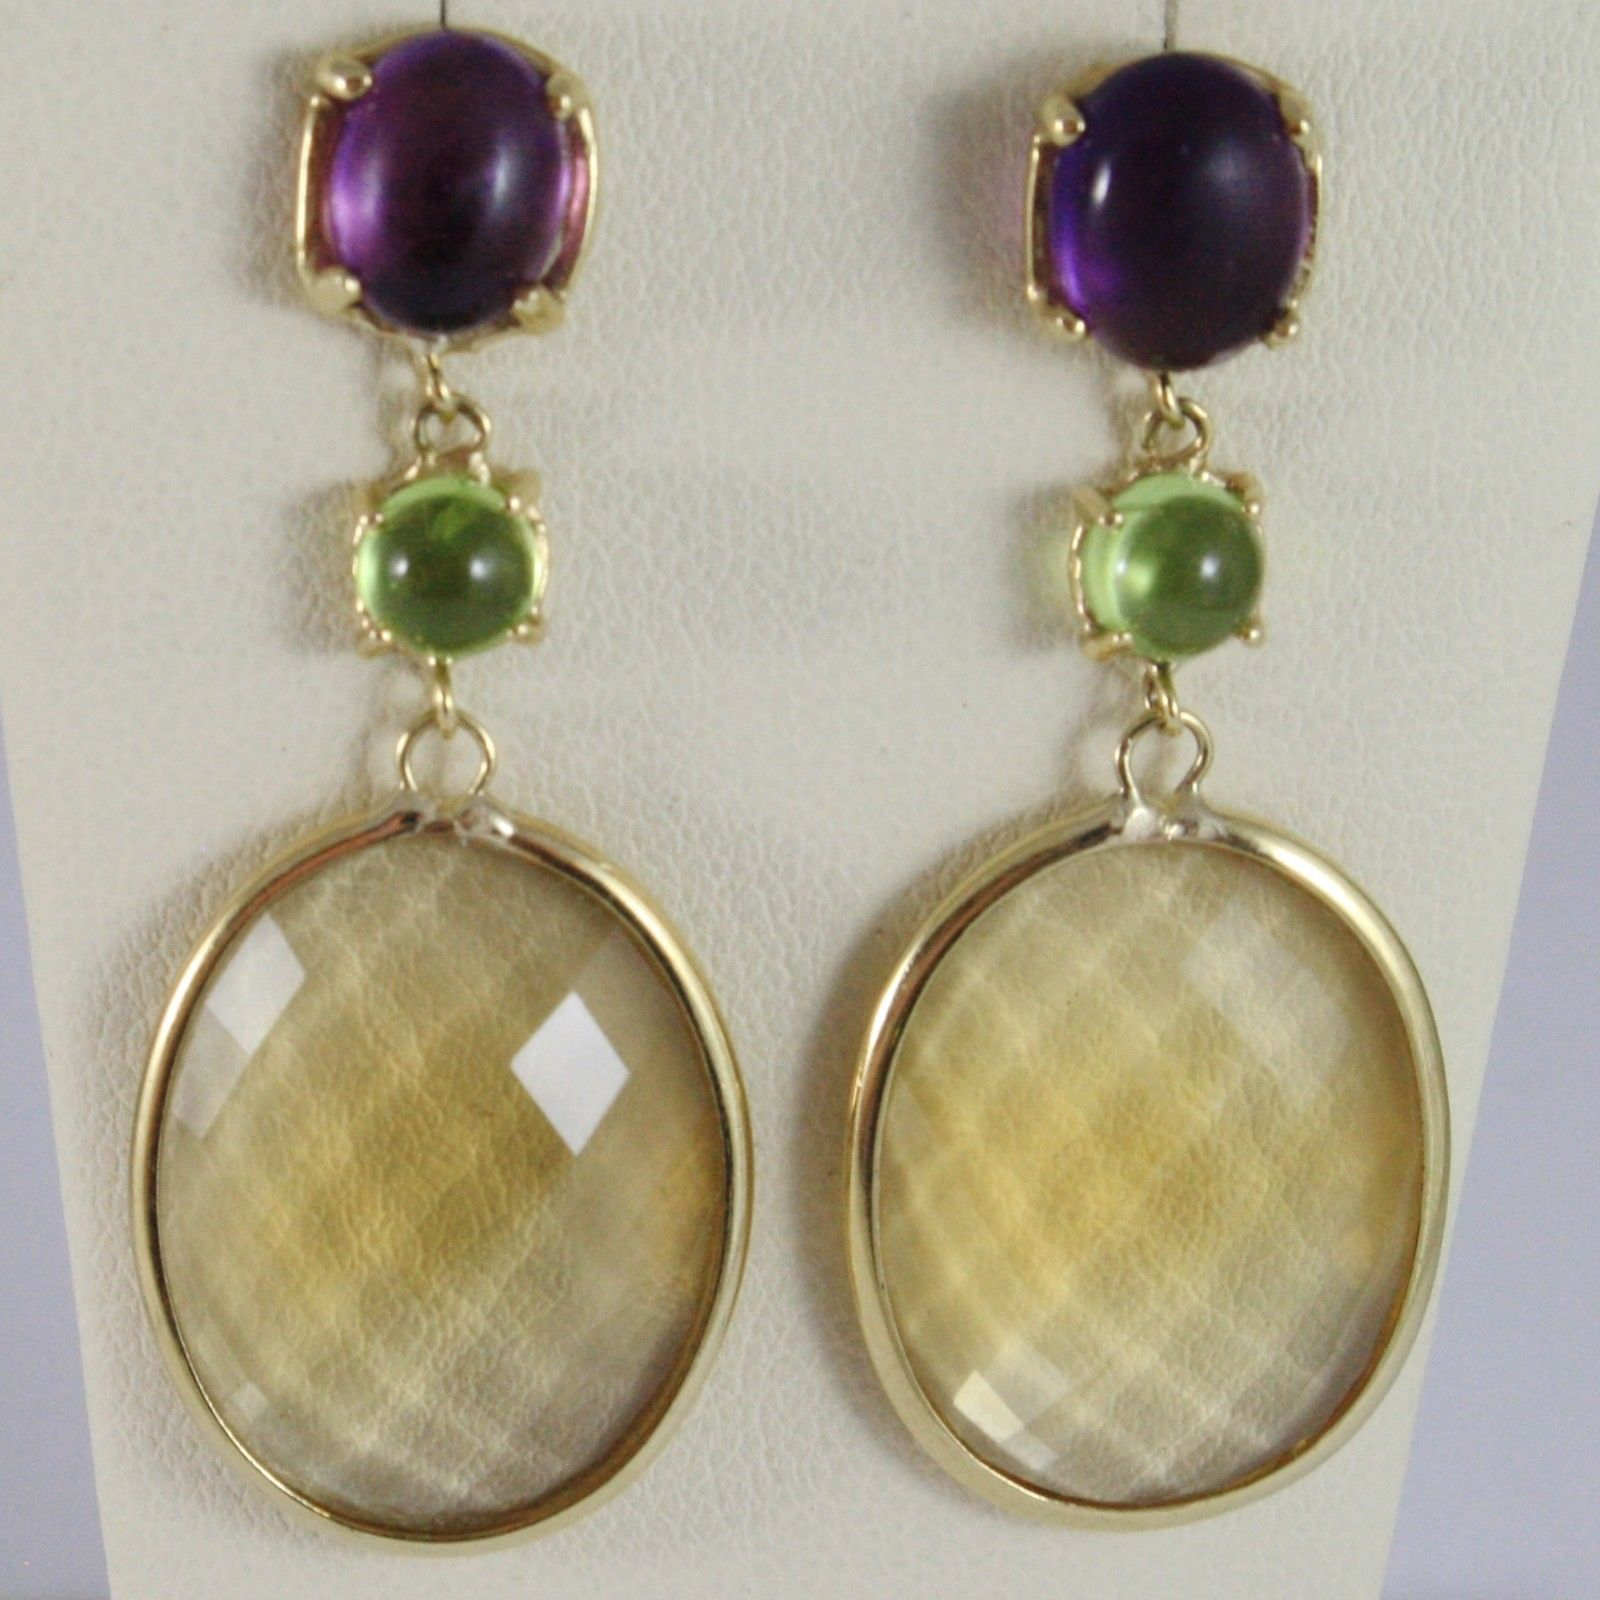 YELLOW GOLD EARRINGS 375 9K HANGING WITH QUARTZ CITRINE, AMETHYST AND PERIDOT